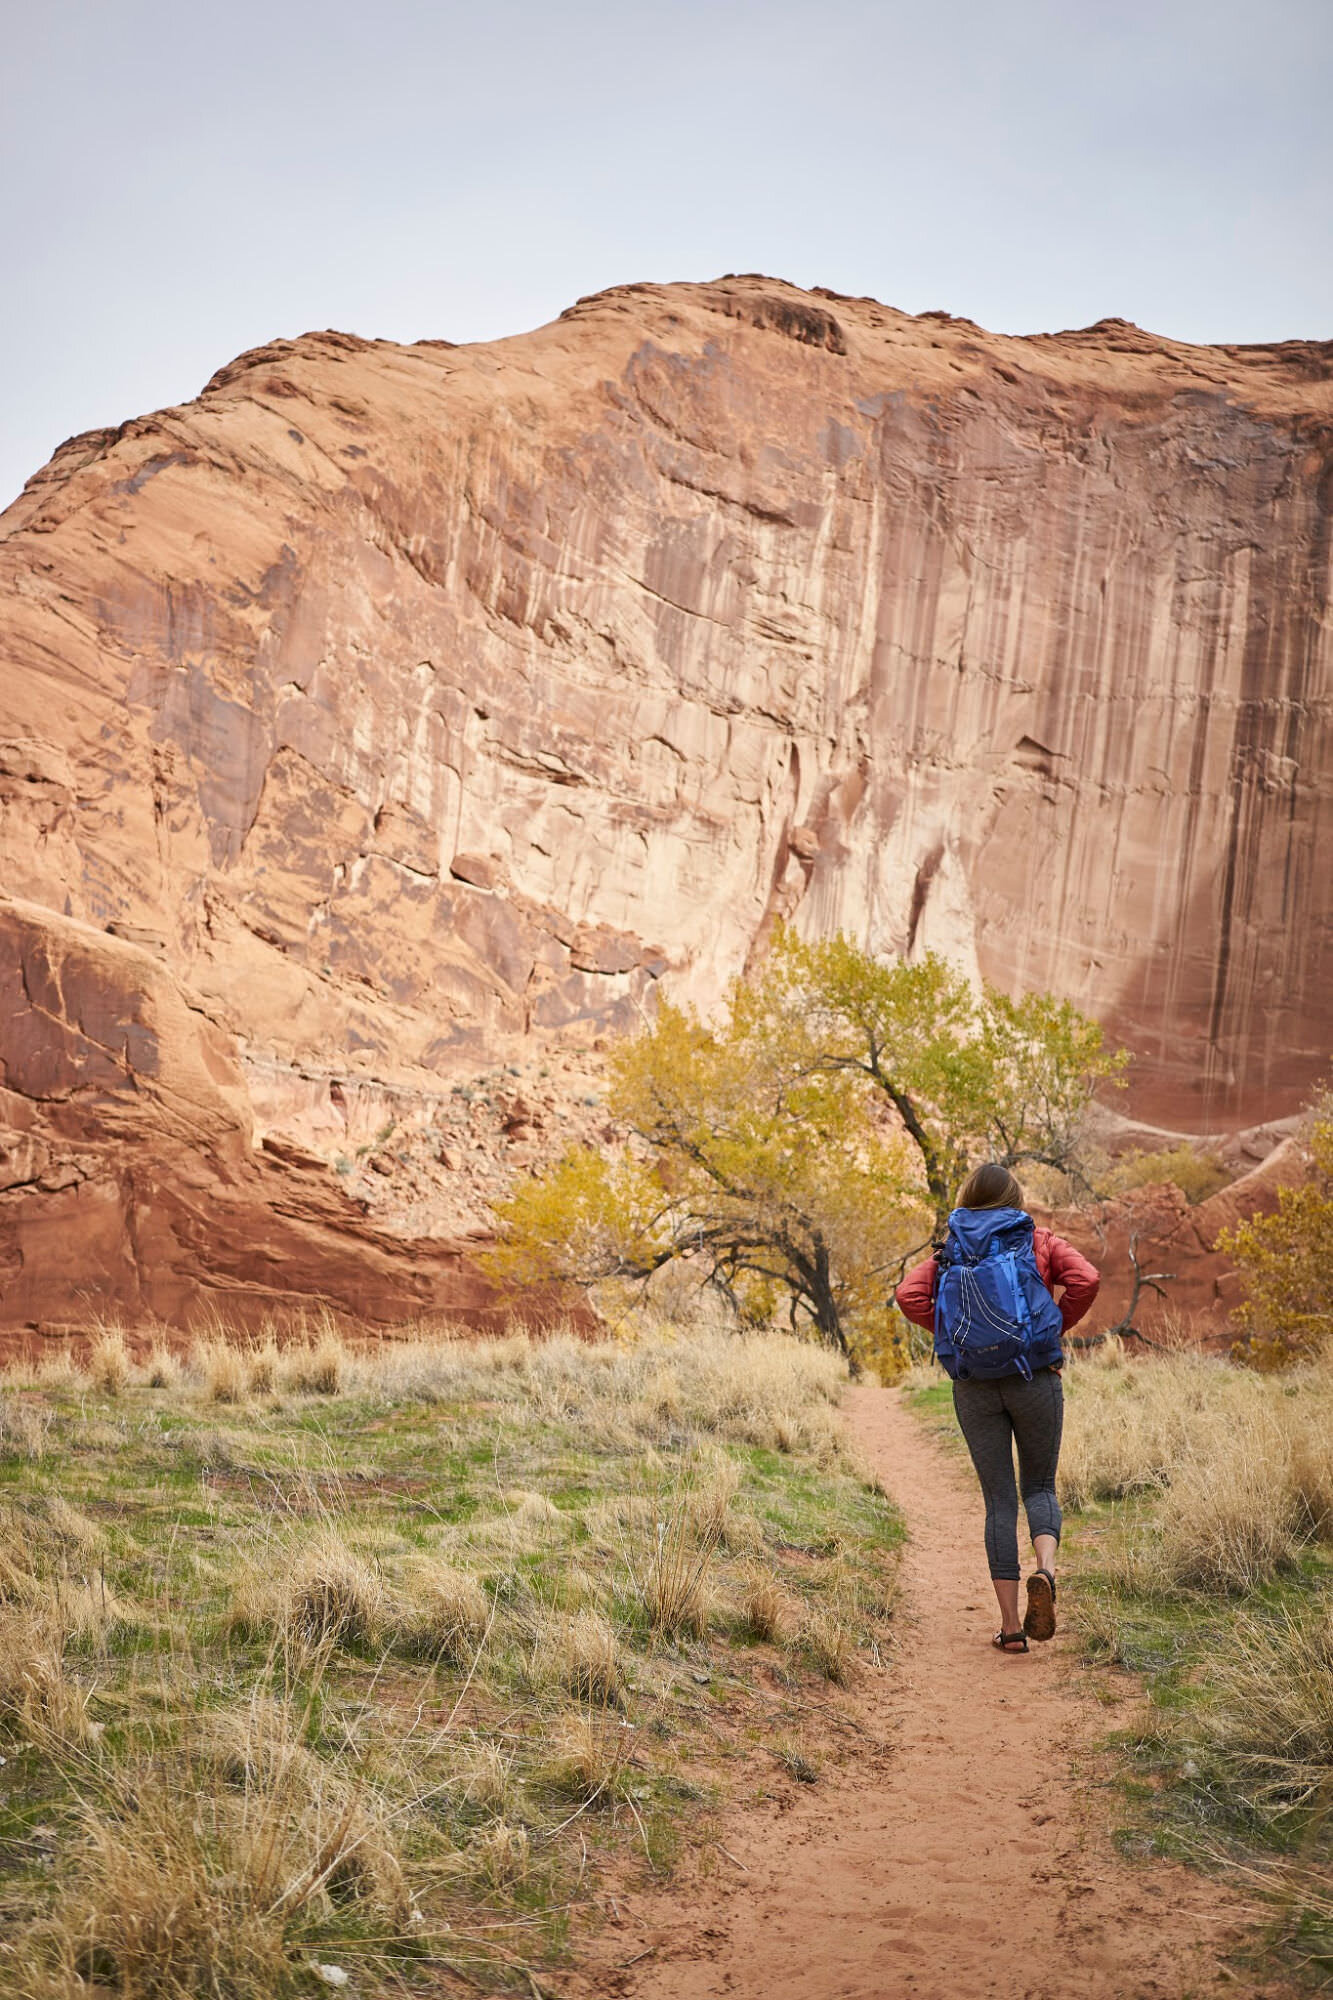 Amanda Outside hiking blog - the complete guide to backpacking Coyote Gulch in Utah. Coyote Gulch is a classic backpacking trip in Utah. Click through for the complete guide. www.amandaoutside.com